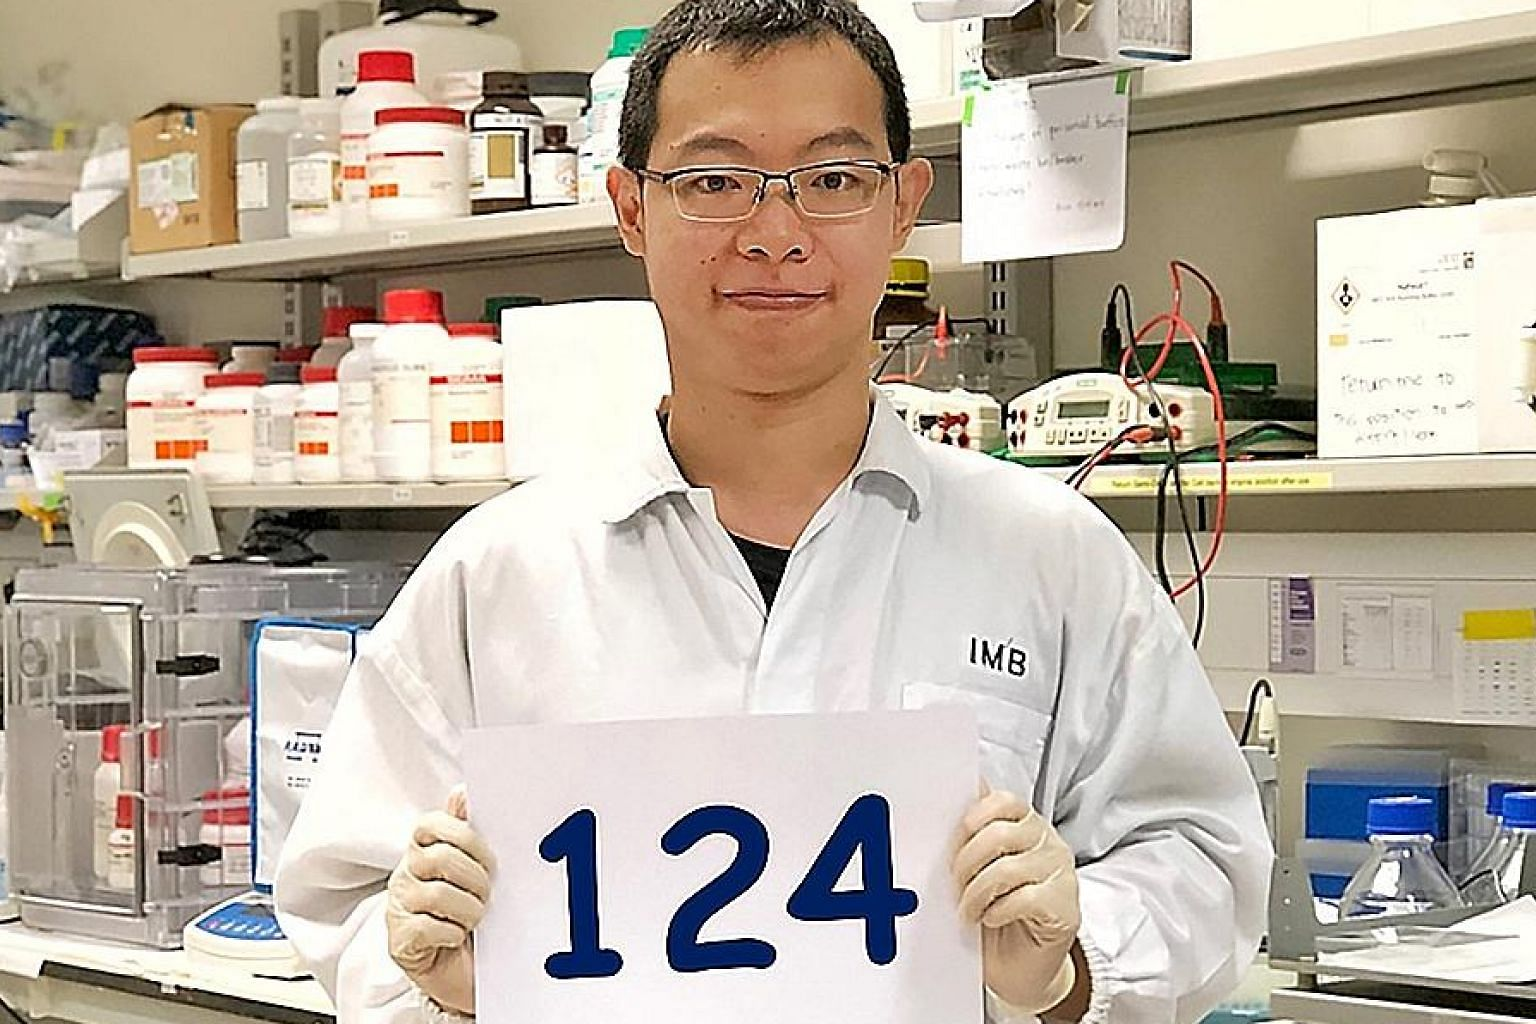 Dr Vincent Lim, 33, was an EM3 pupil who scored 124 for his PSLE. He now holds a PhD in medical research and is a research fellow at A*Star's Institute of Medical Biology.